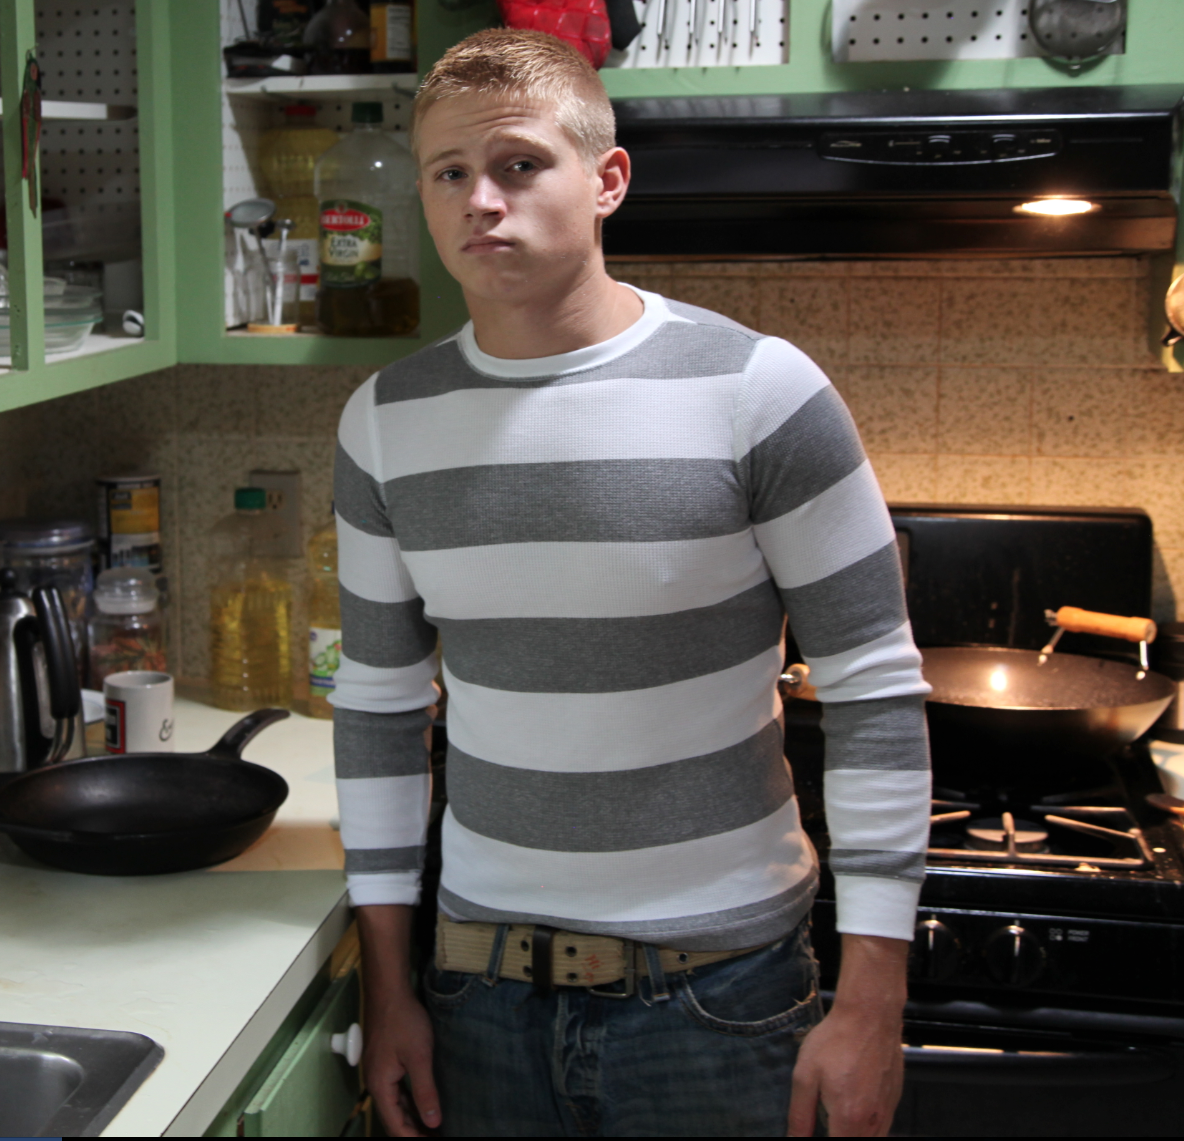 LEATHER STRAP SPANKING: TEEN CUTIE NICK GETS SPANKED ON